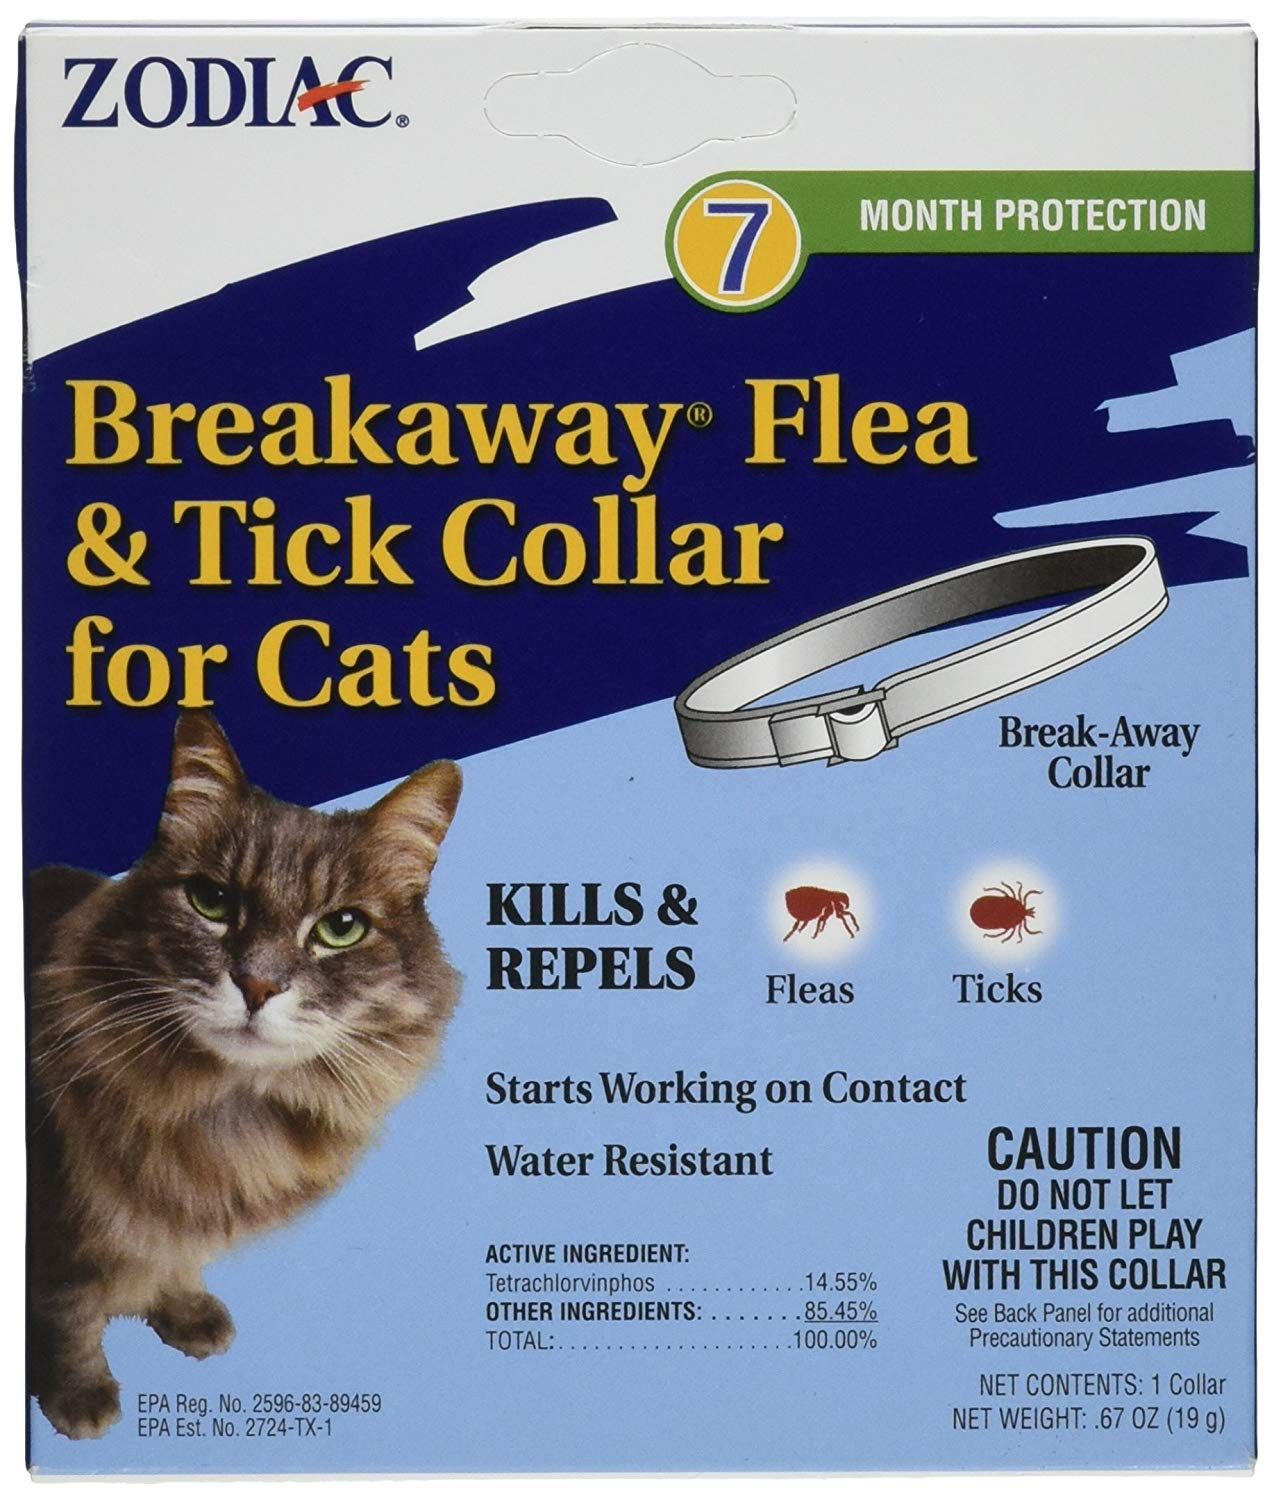 Zodiac Breakaway Flea And Tick Collar For Cats 13 Nice Of You To Drop By To View The Photo This Is An Affiliate Link Cat Flea And Tick Cat Fleas Fleas